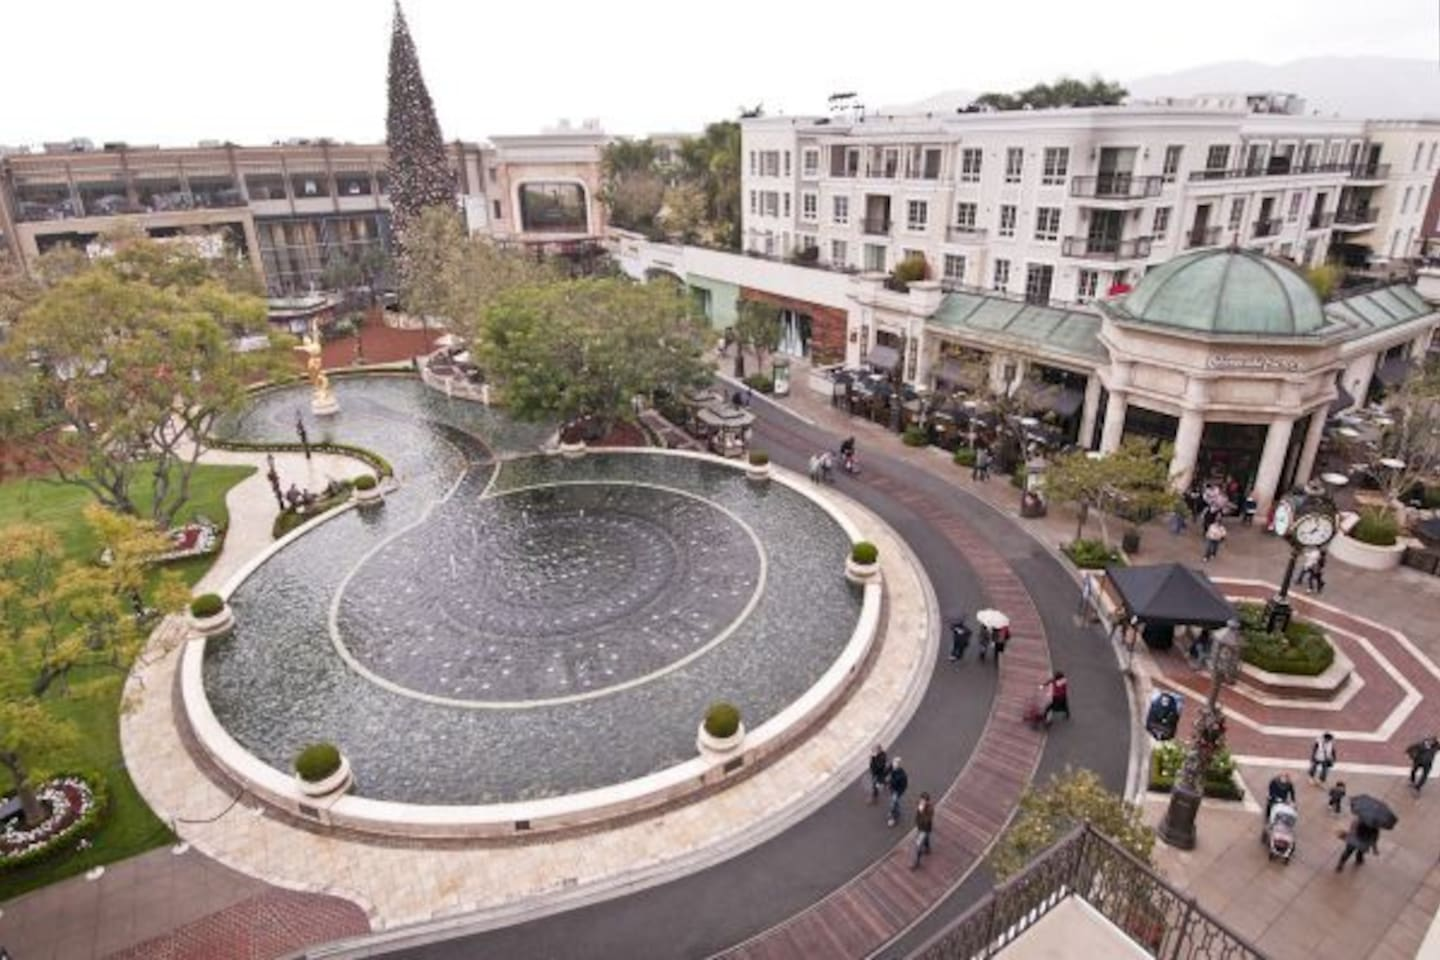 Americana's water fountain at daytime